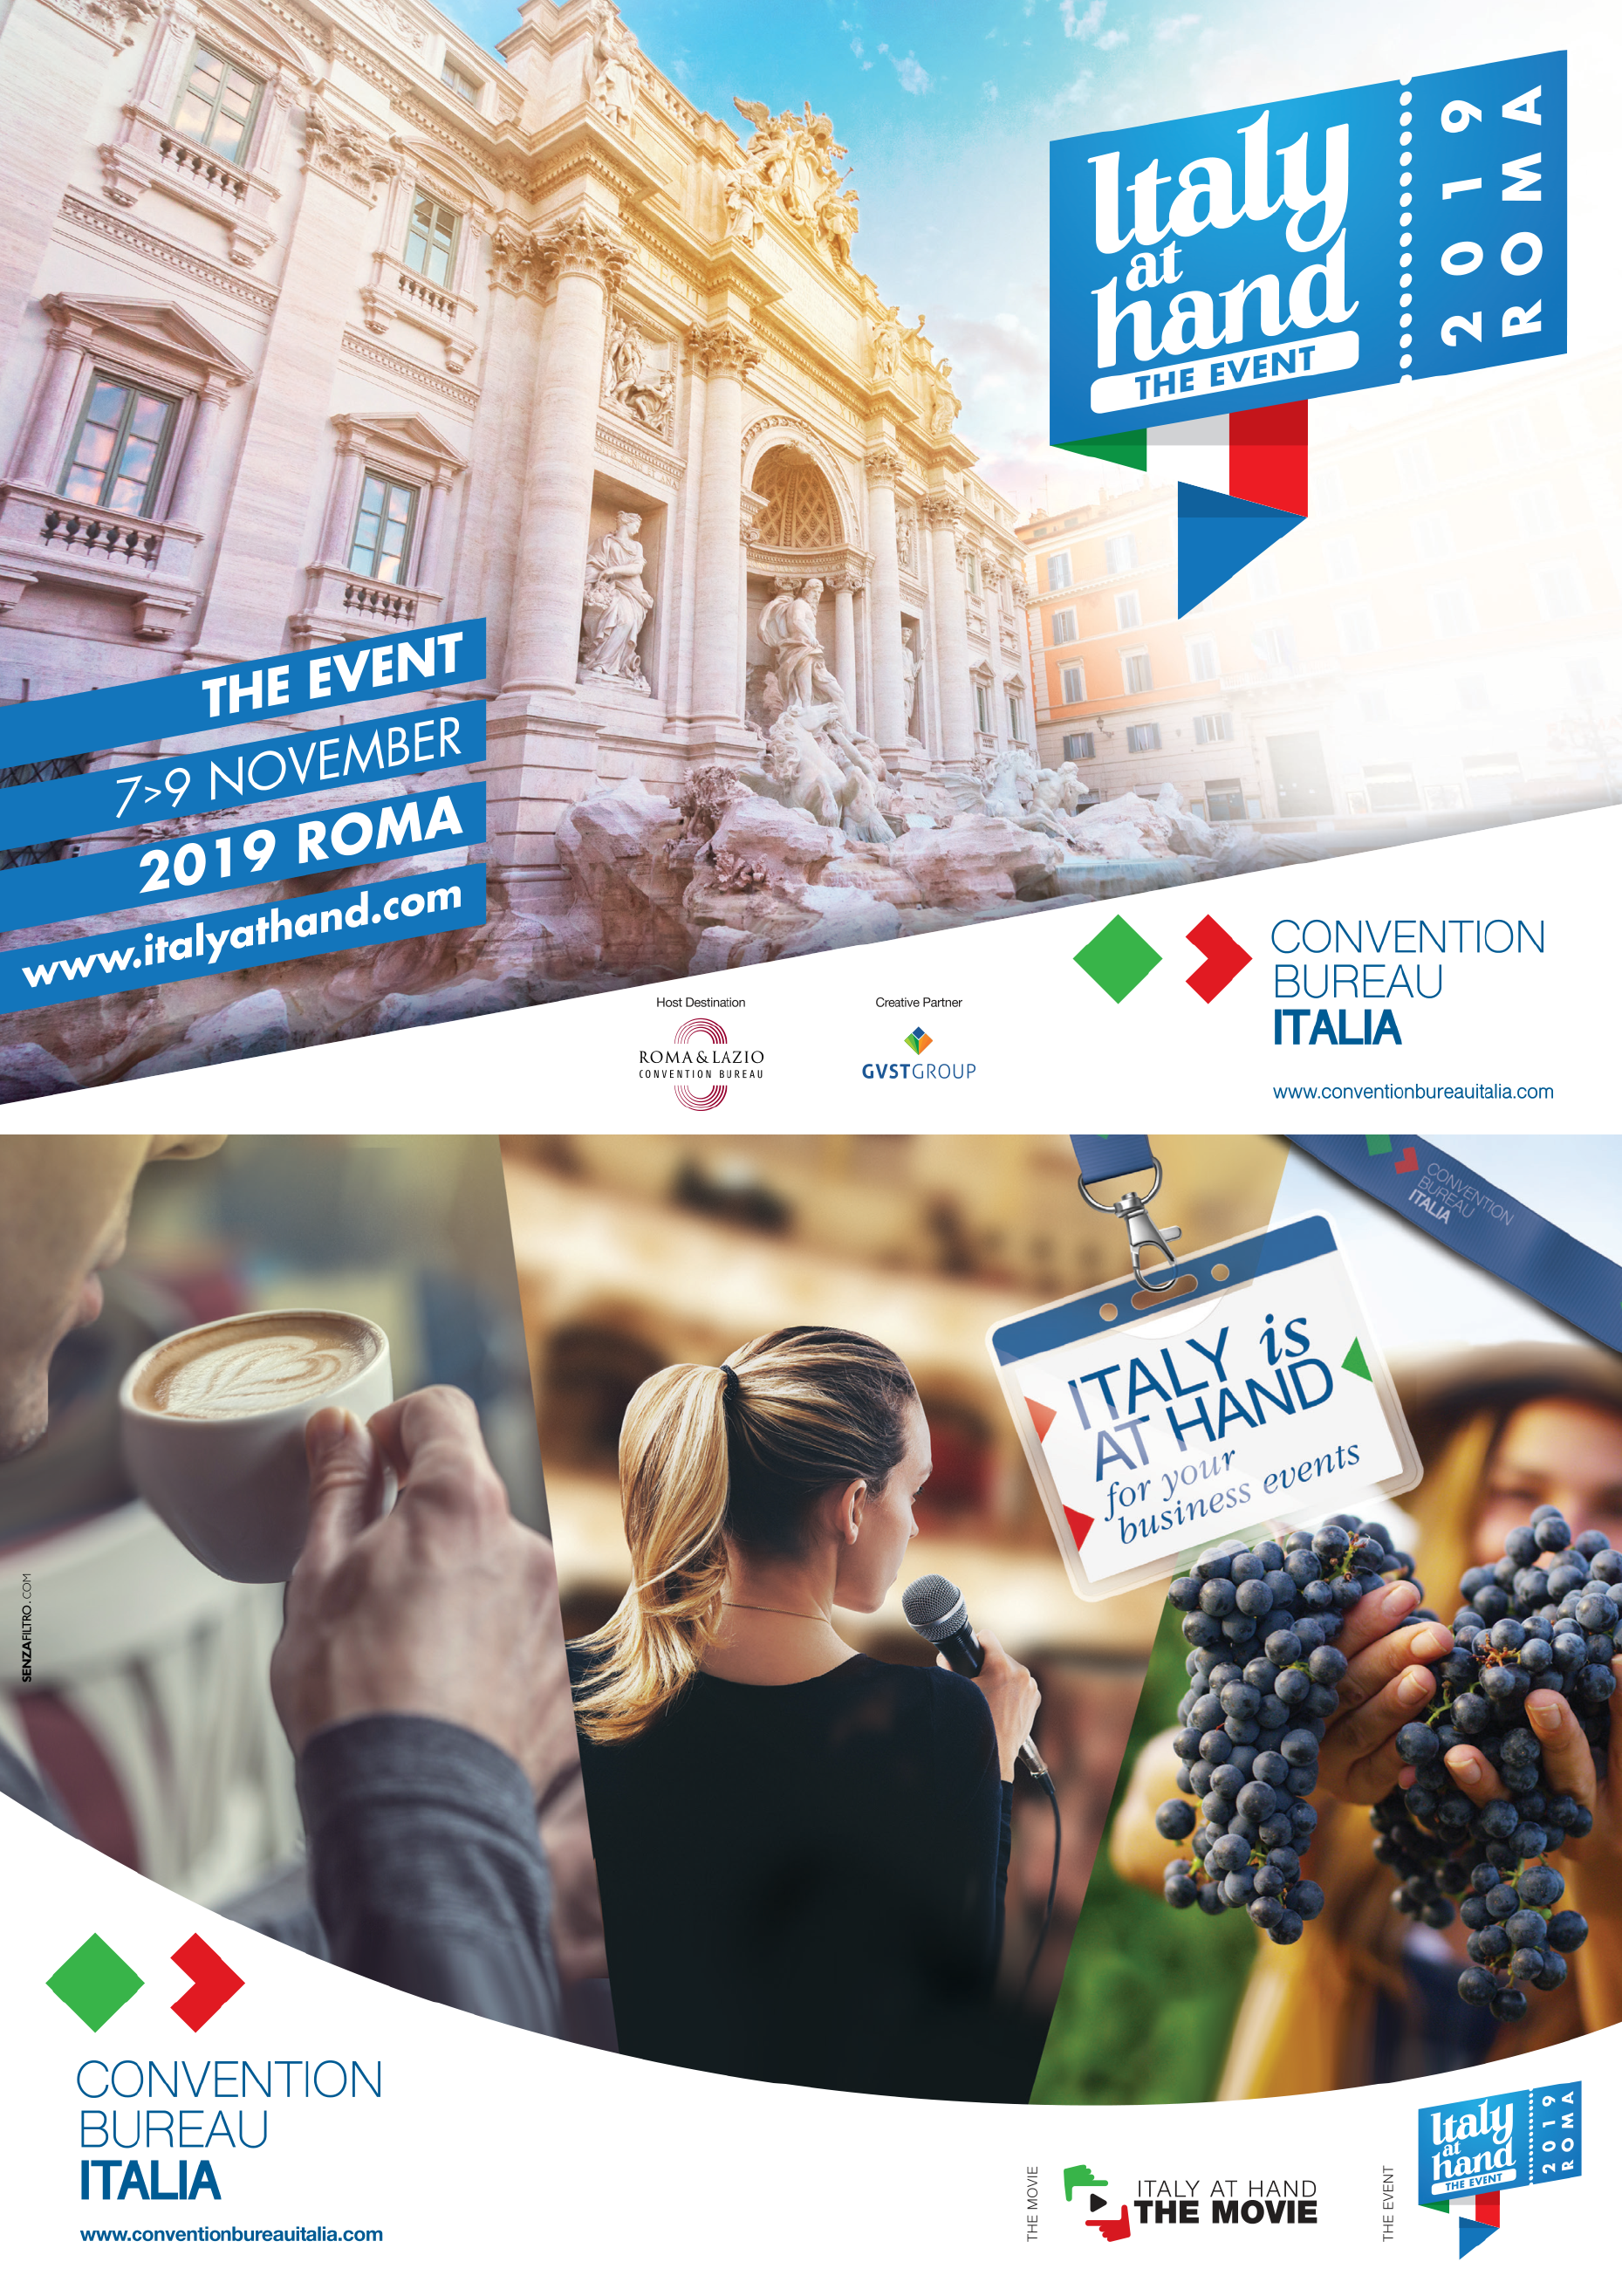 Italy at Hand, The Event by Convention Bureau Italia